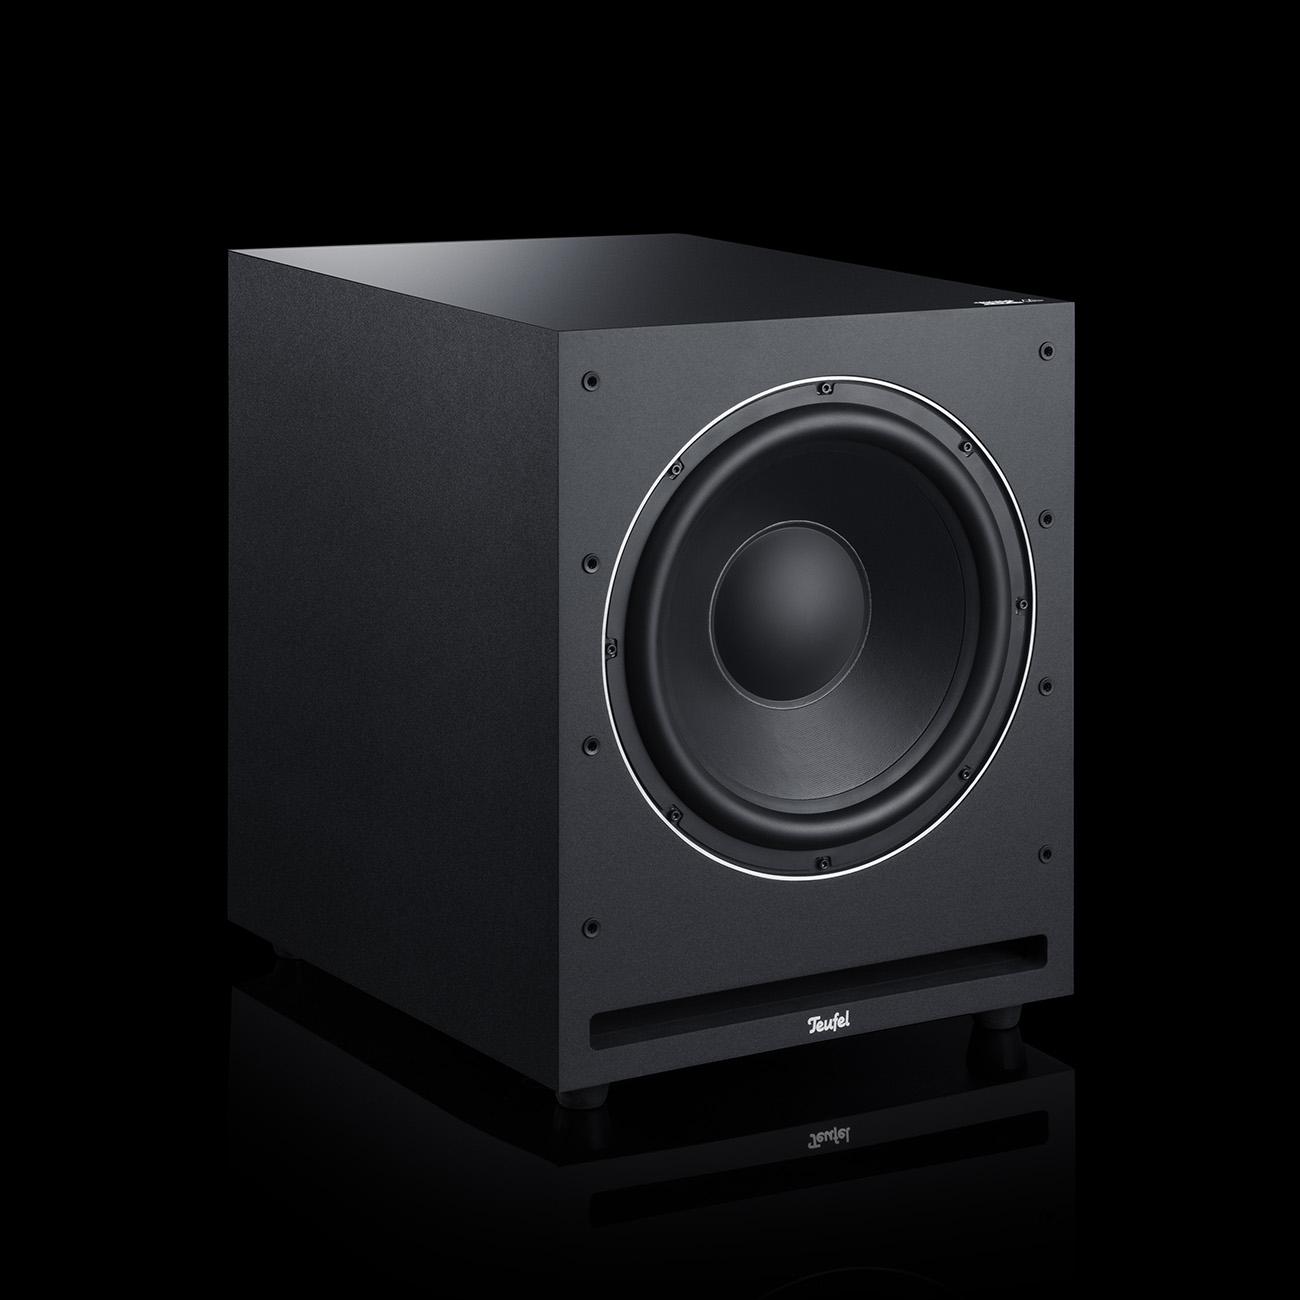 system-6-thx-select-sub-front-angled-black-on-black-1300x1300x72.jpg